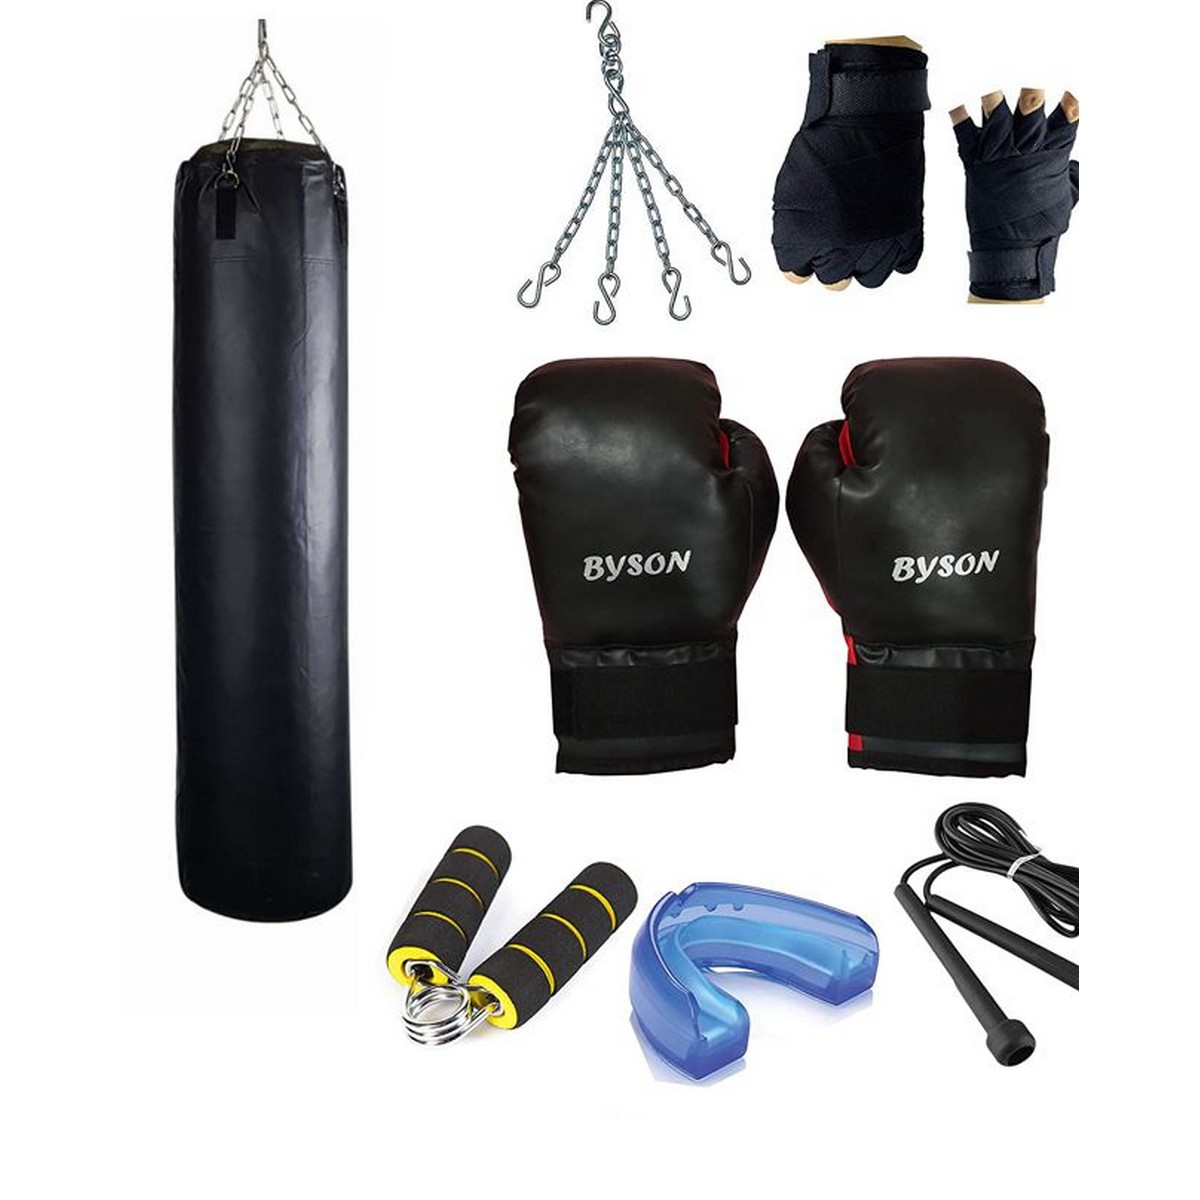 Synthetic Leather Rough and Tough Boxing Kit Set for Men and Senior(3feetPunchingBag,12ozBoxingGloves, SkippingRope, HandGrip, MouthGuard, Chain) Heavy Bag for Exercise and Fitness